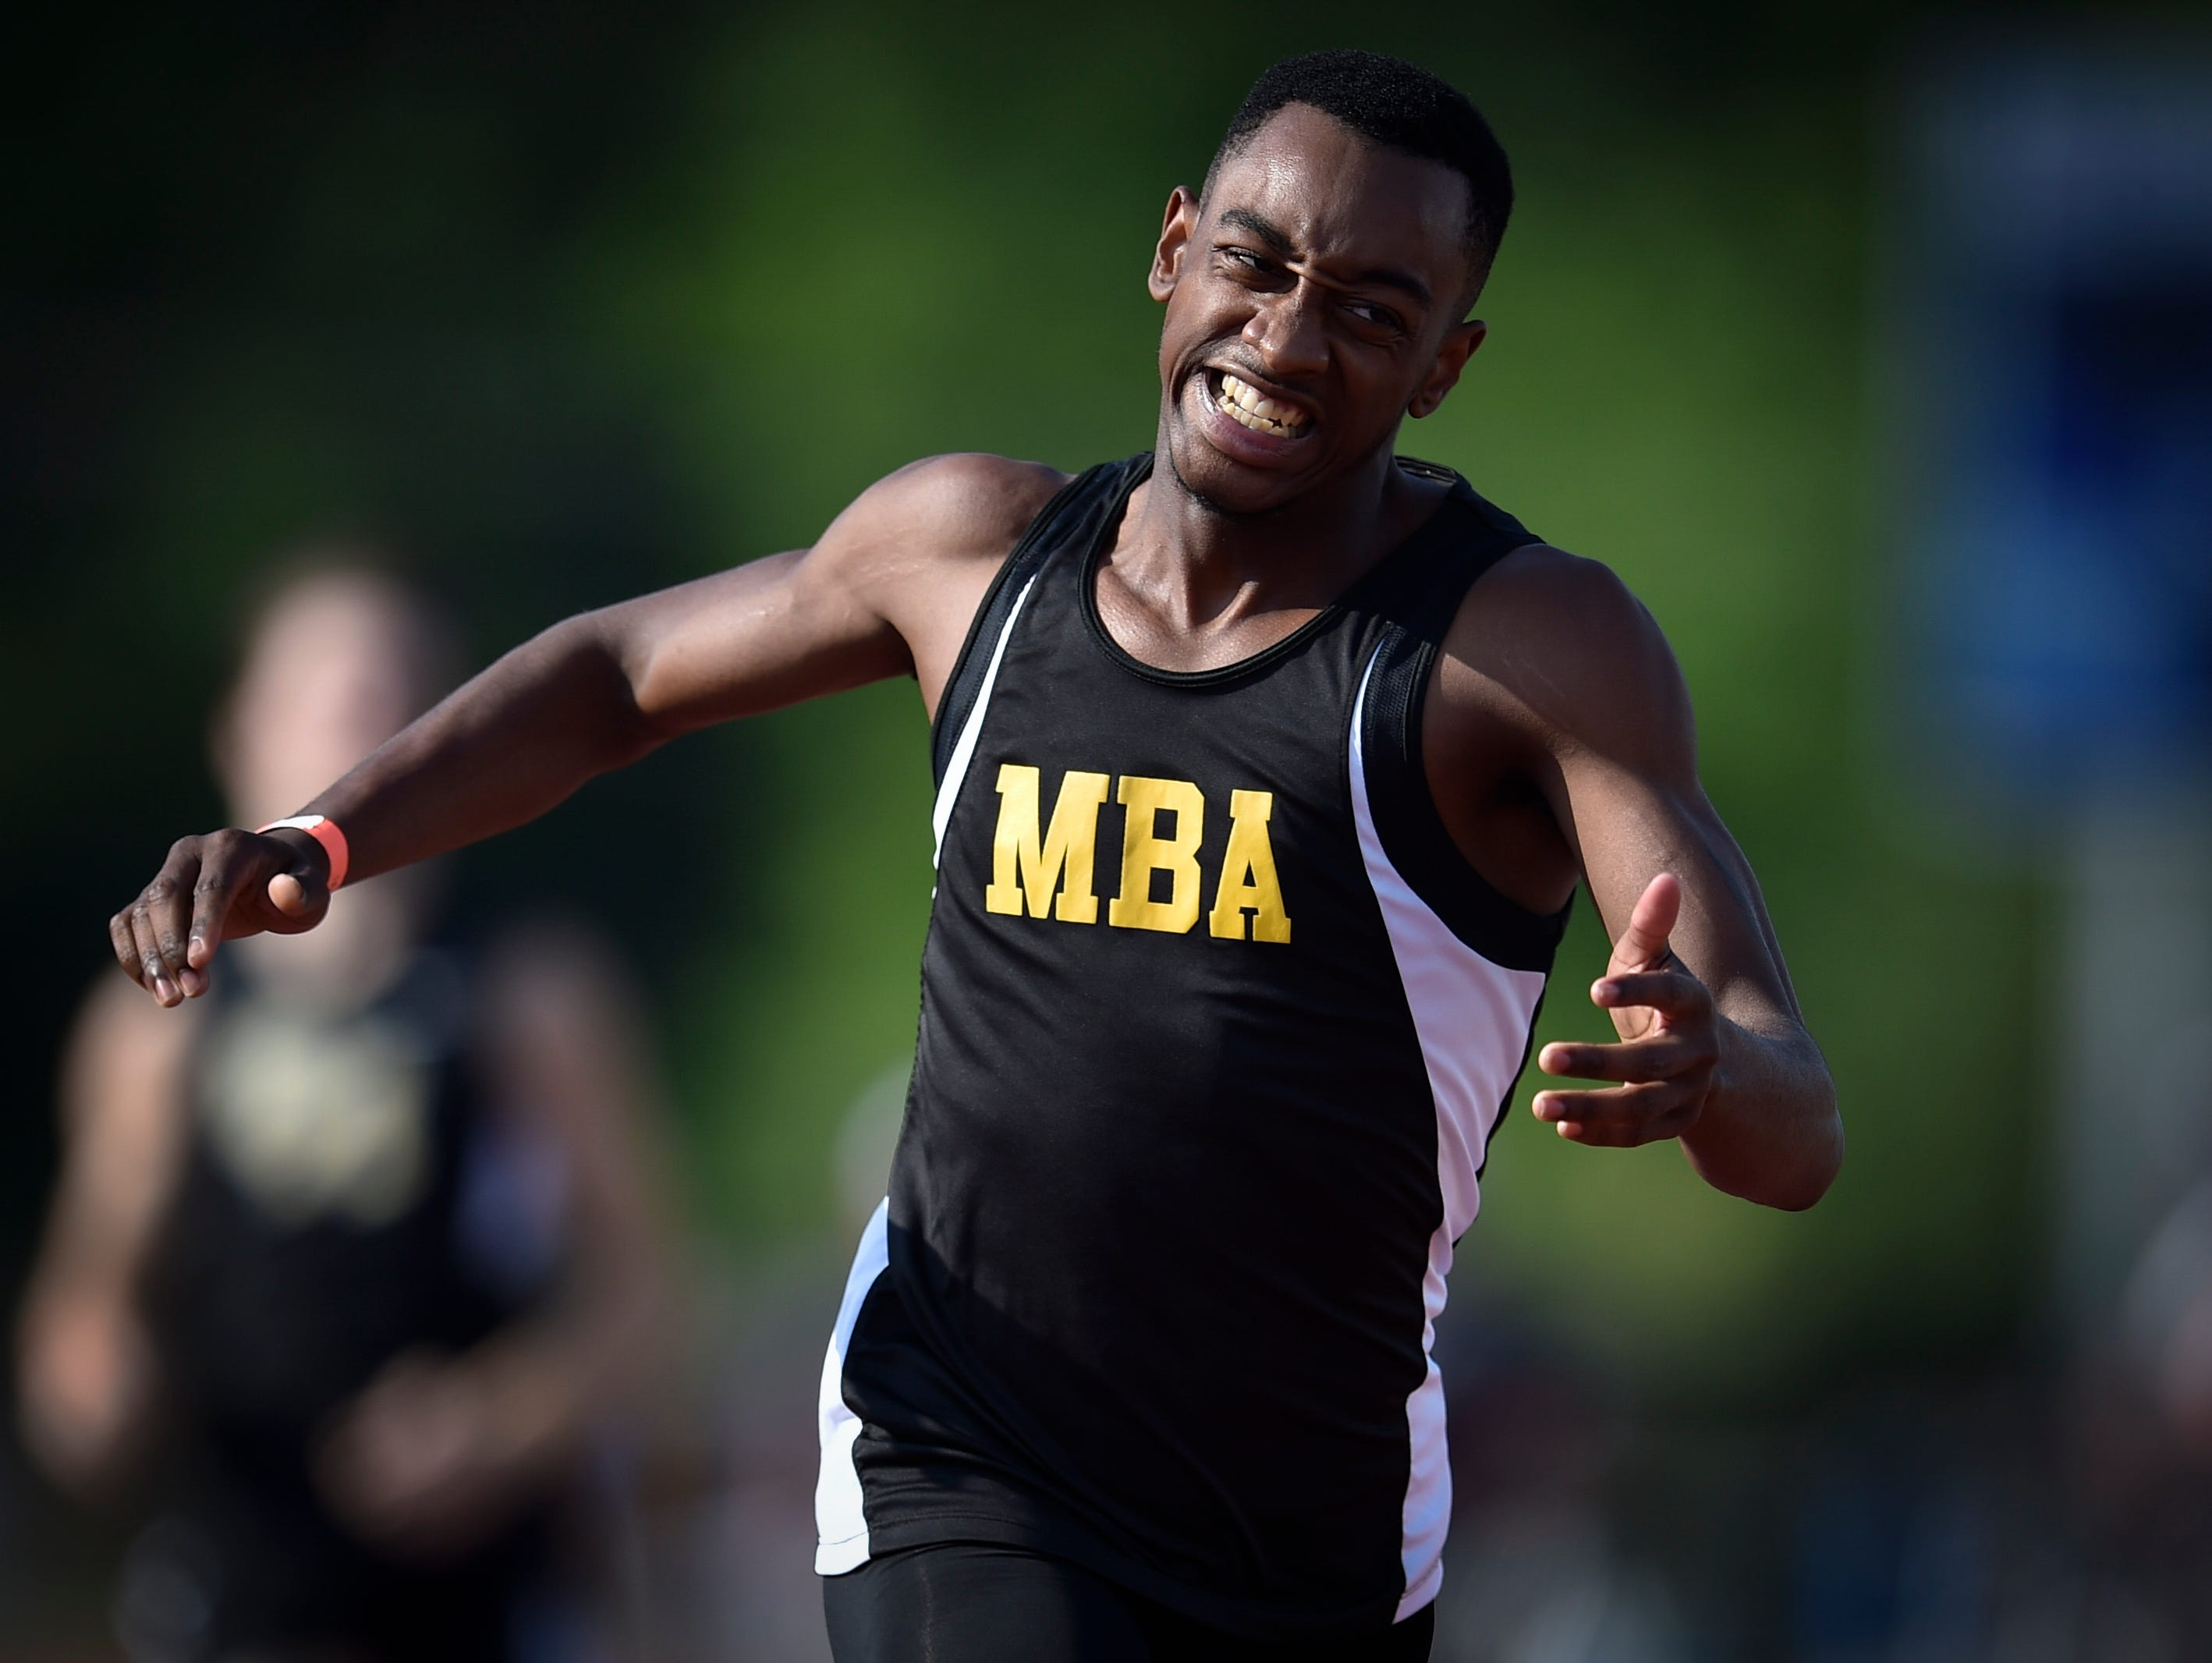 Memphis Business Academy's Kobey Hill reacts as he wins in the A-AA 400m Dash during the Spring Fling boys state track meet at MTSU's Dean Hayes Track and Field Stadium, Friday, May 27, 2016, in Murfreesboro, Tenn.